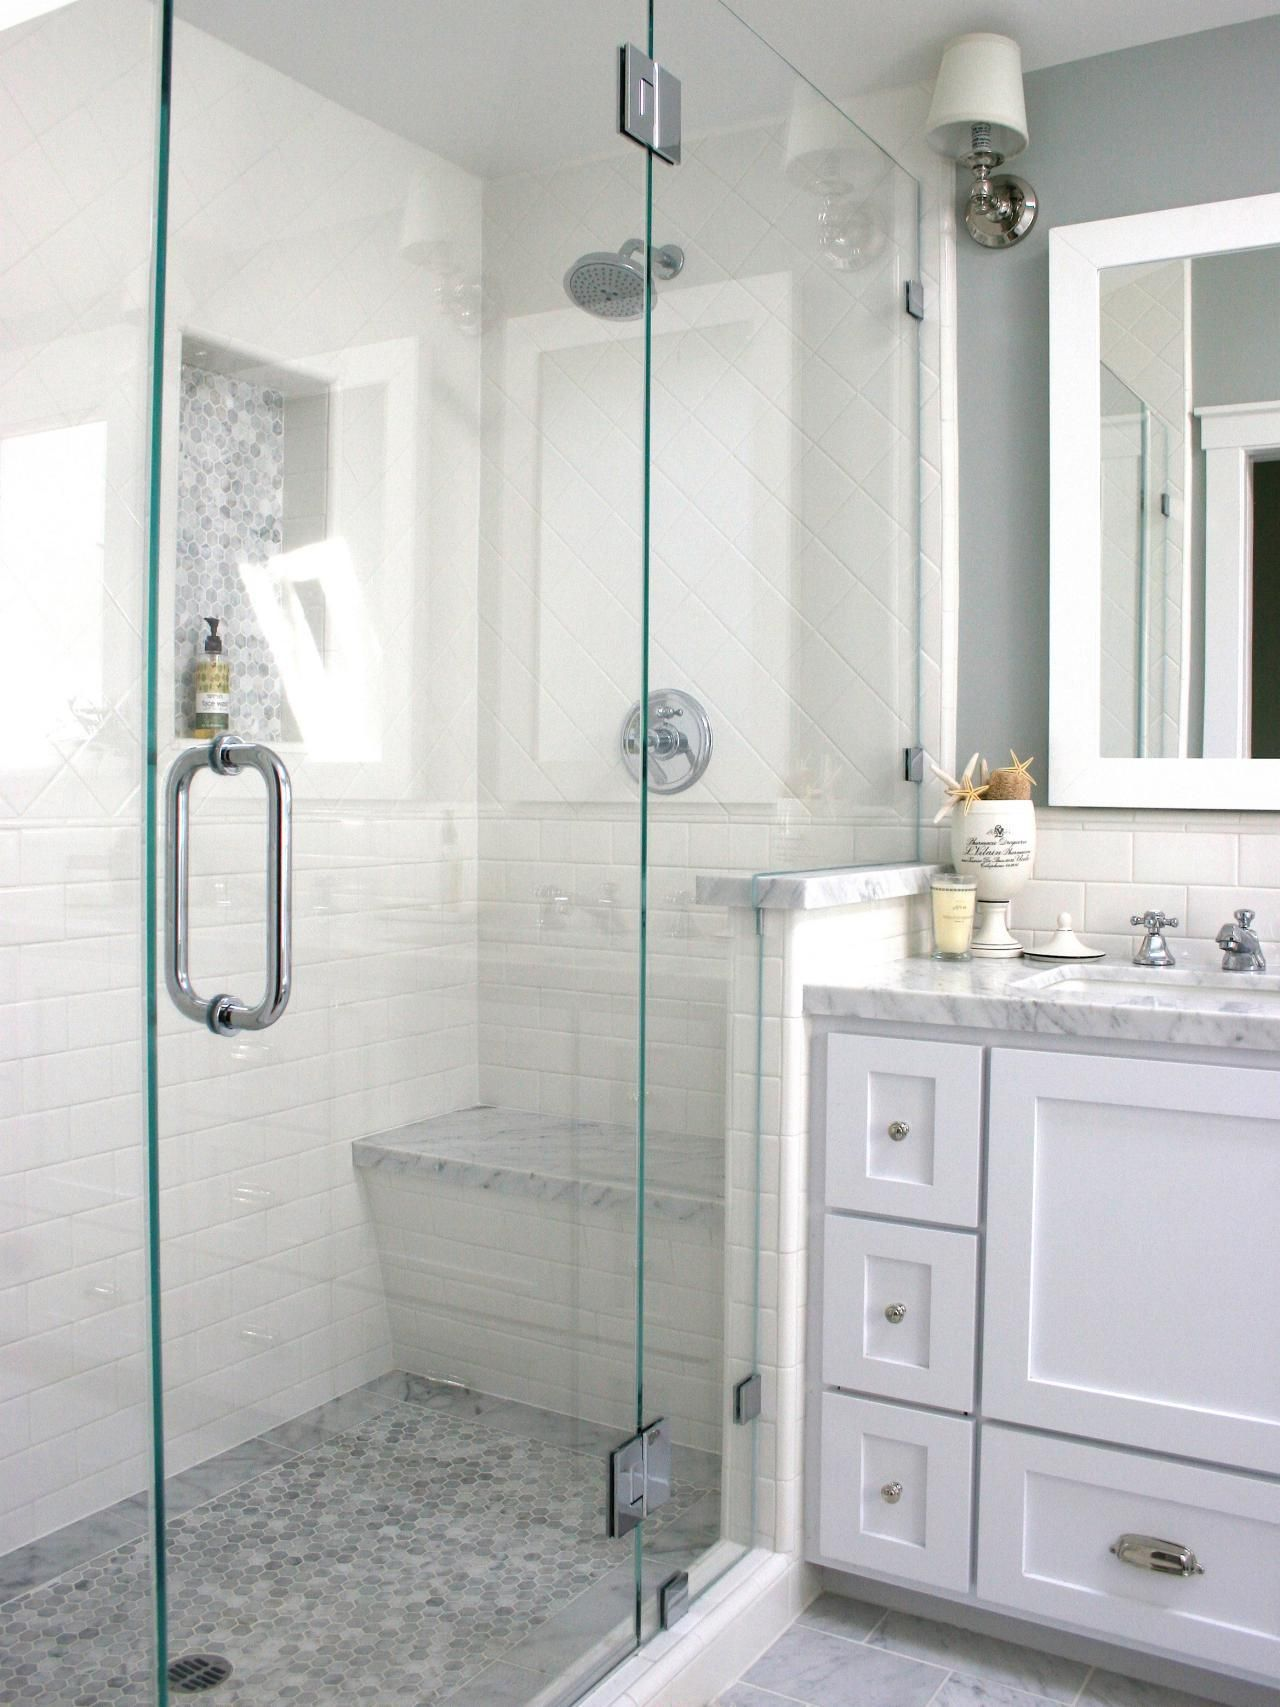 A Glass Enclosed Shower With White Tile Walls And A Gray Mosaic